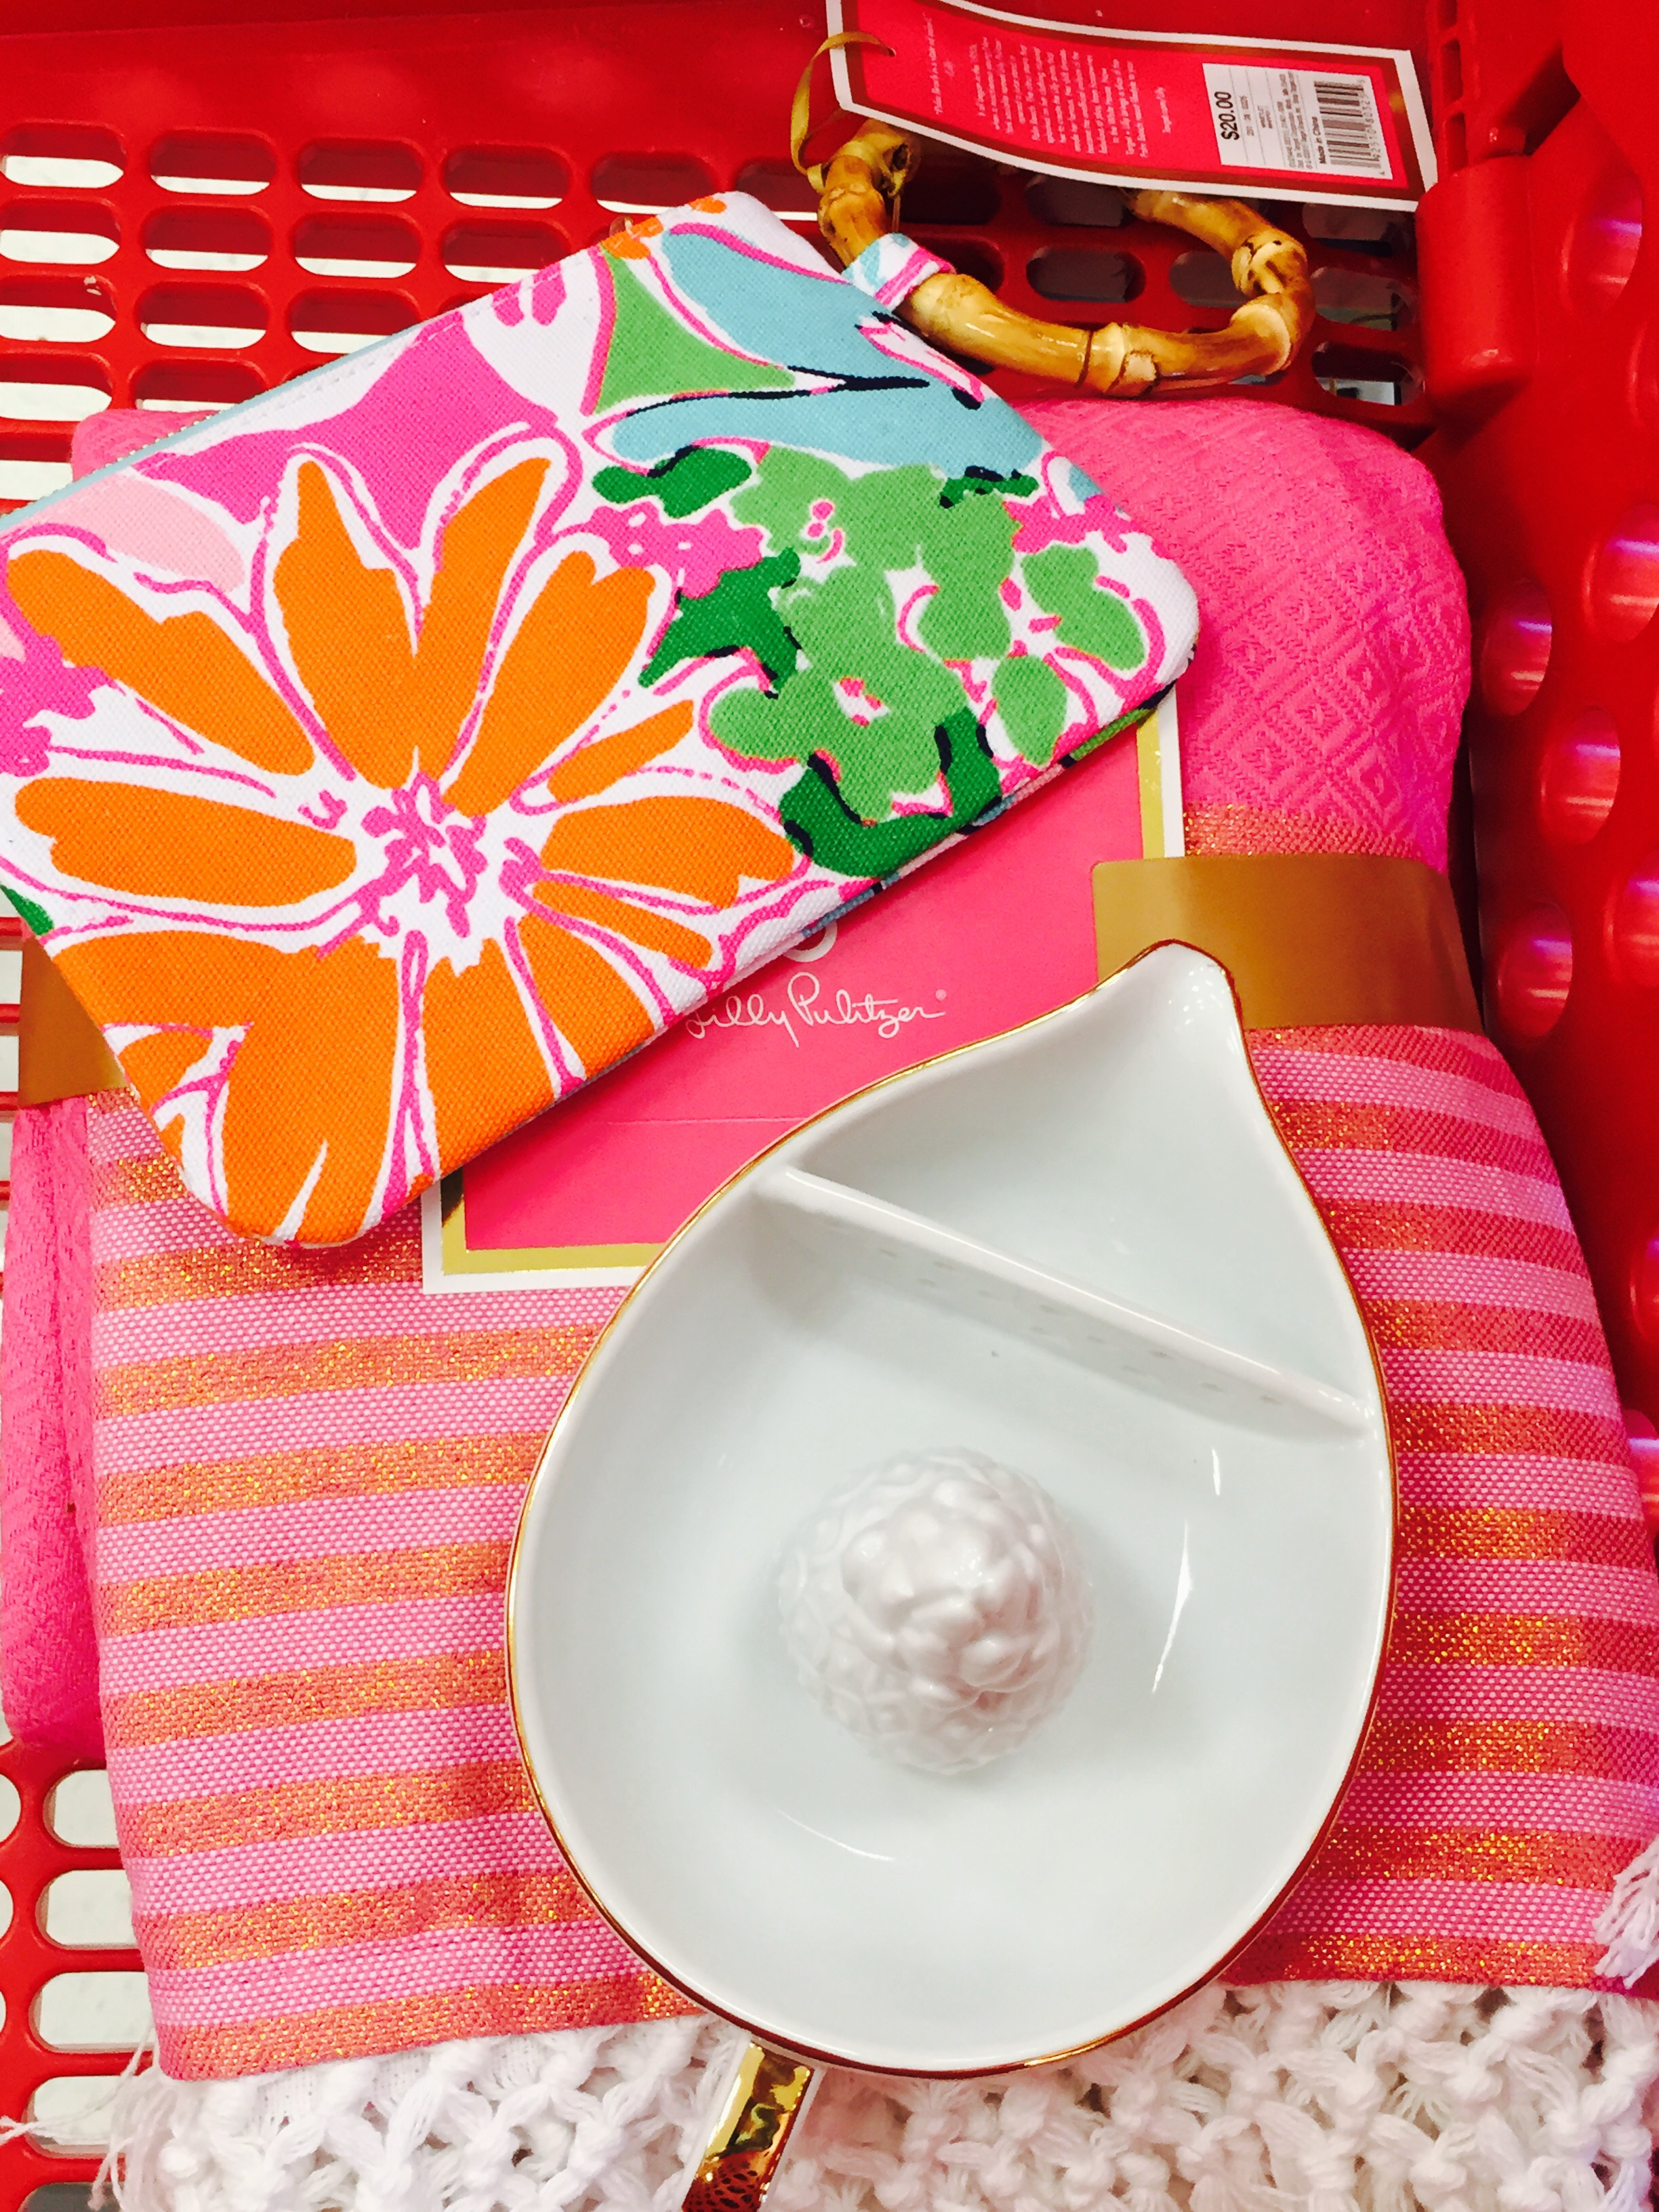 I managed to get three things: A ceramic juicer, a pink picnic blanket and a wristlet for my daughter. I'm contemplating listing my juicer on eBay with a Buy it Now price of a cool $3,000 USD ;)